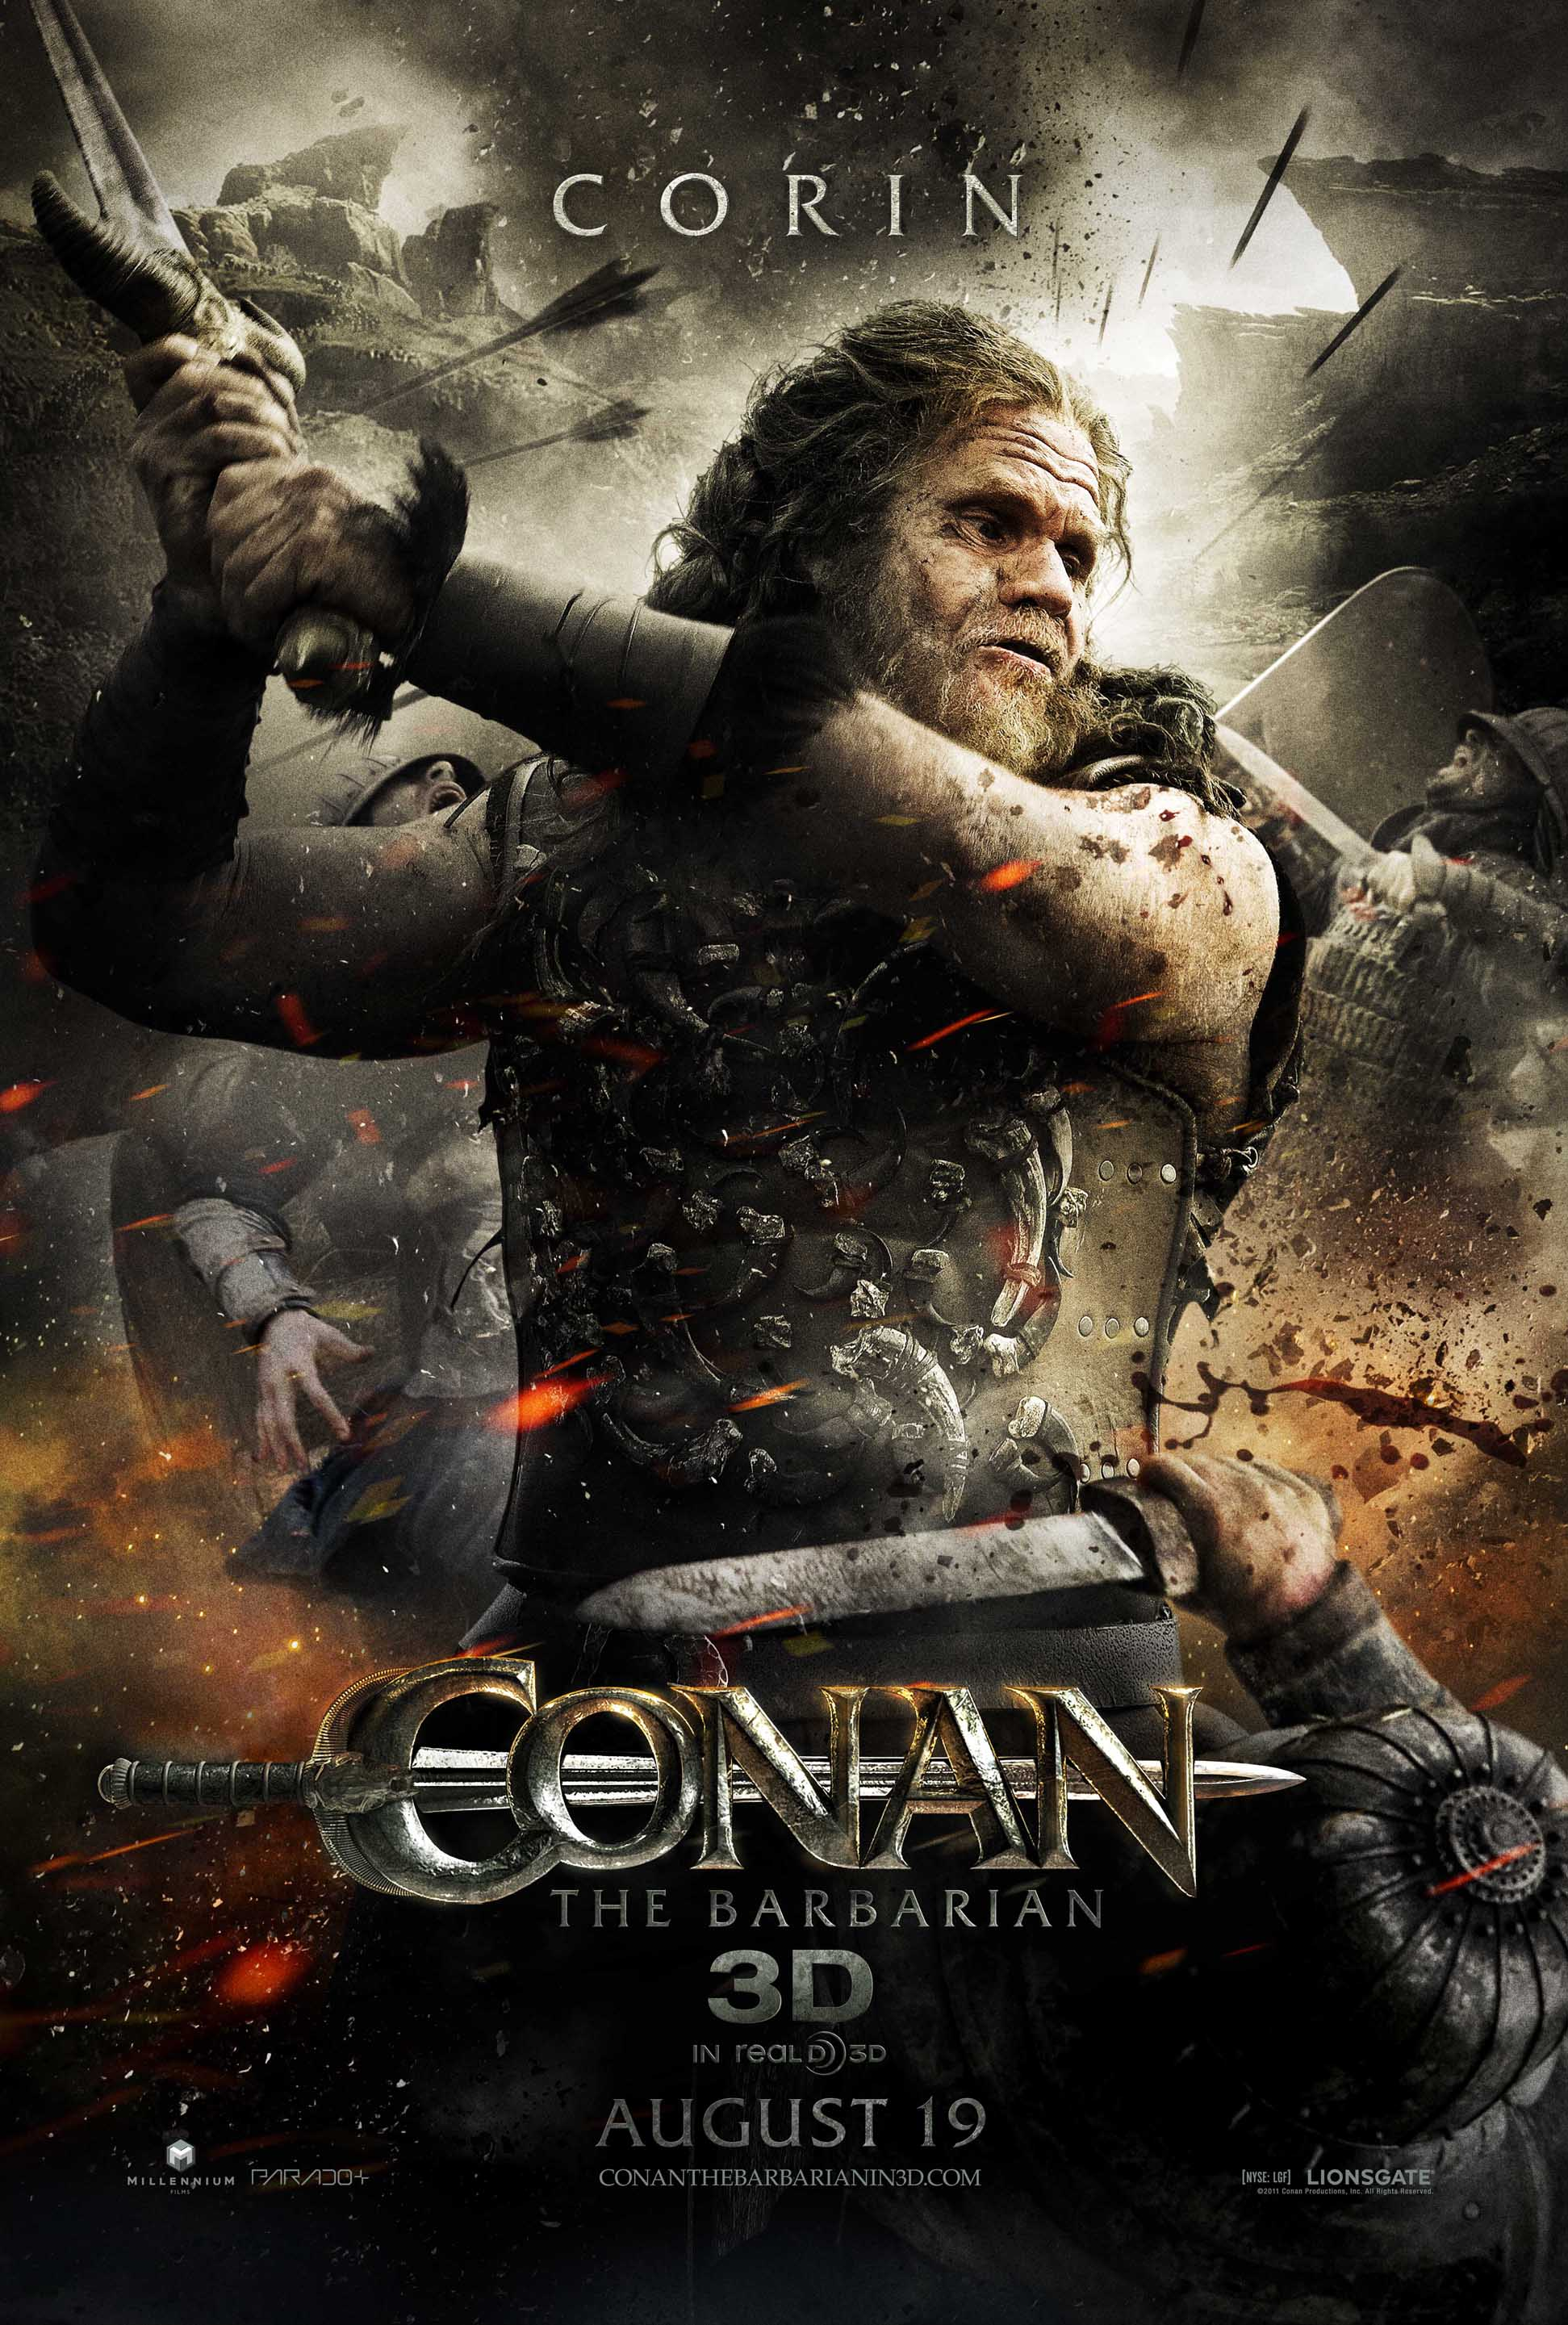 Movie Poster jungle book movie poster : Conan the Barbarian Poster - Ron Perlman - HeyUGuys